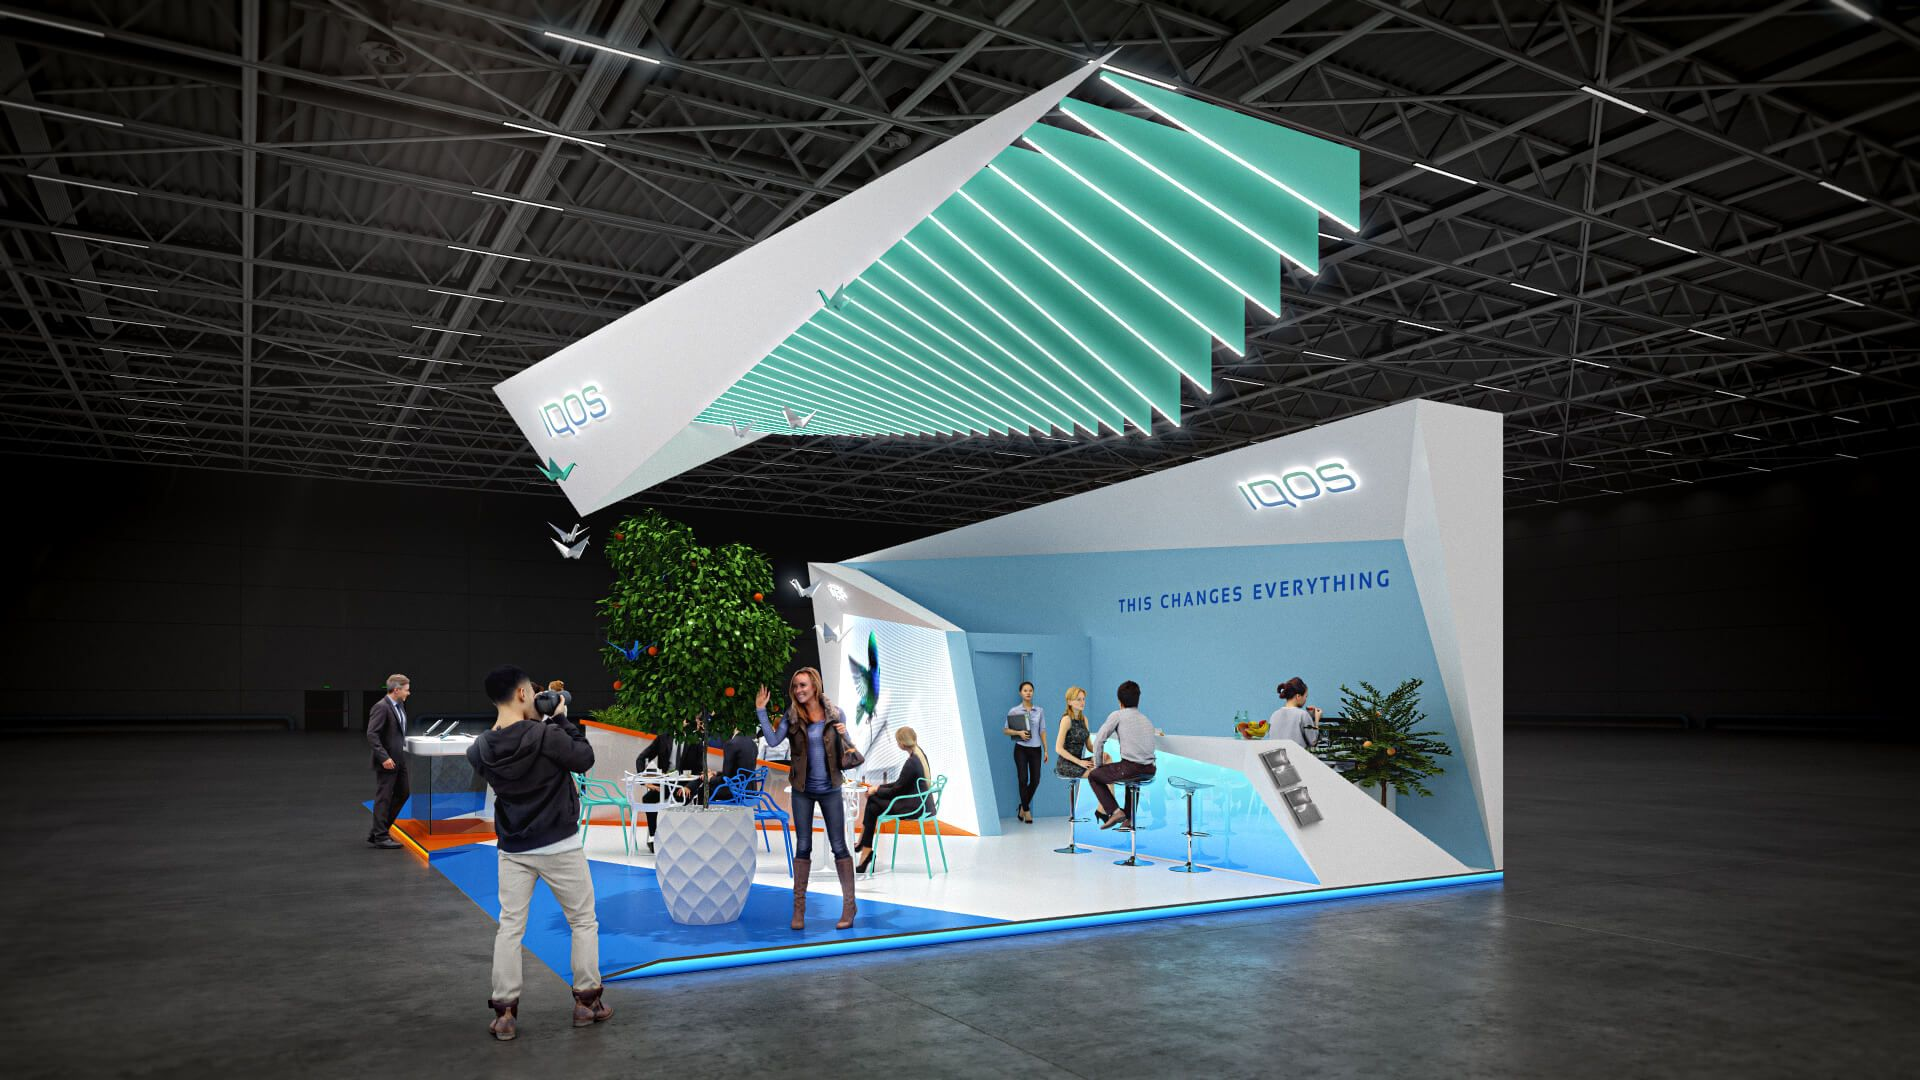 Exhibition Stand Design Concepts : Iqos exhibition booth design concept exhibition design